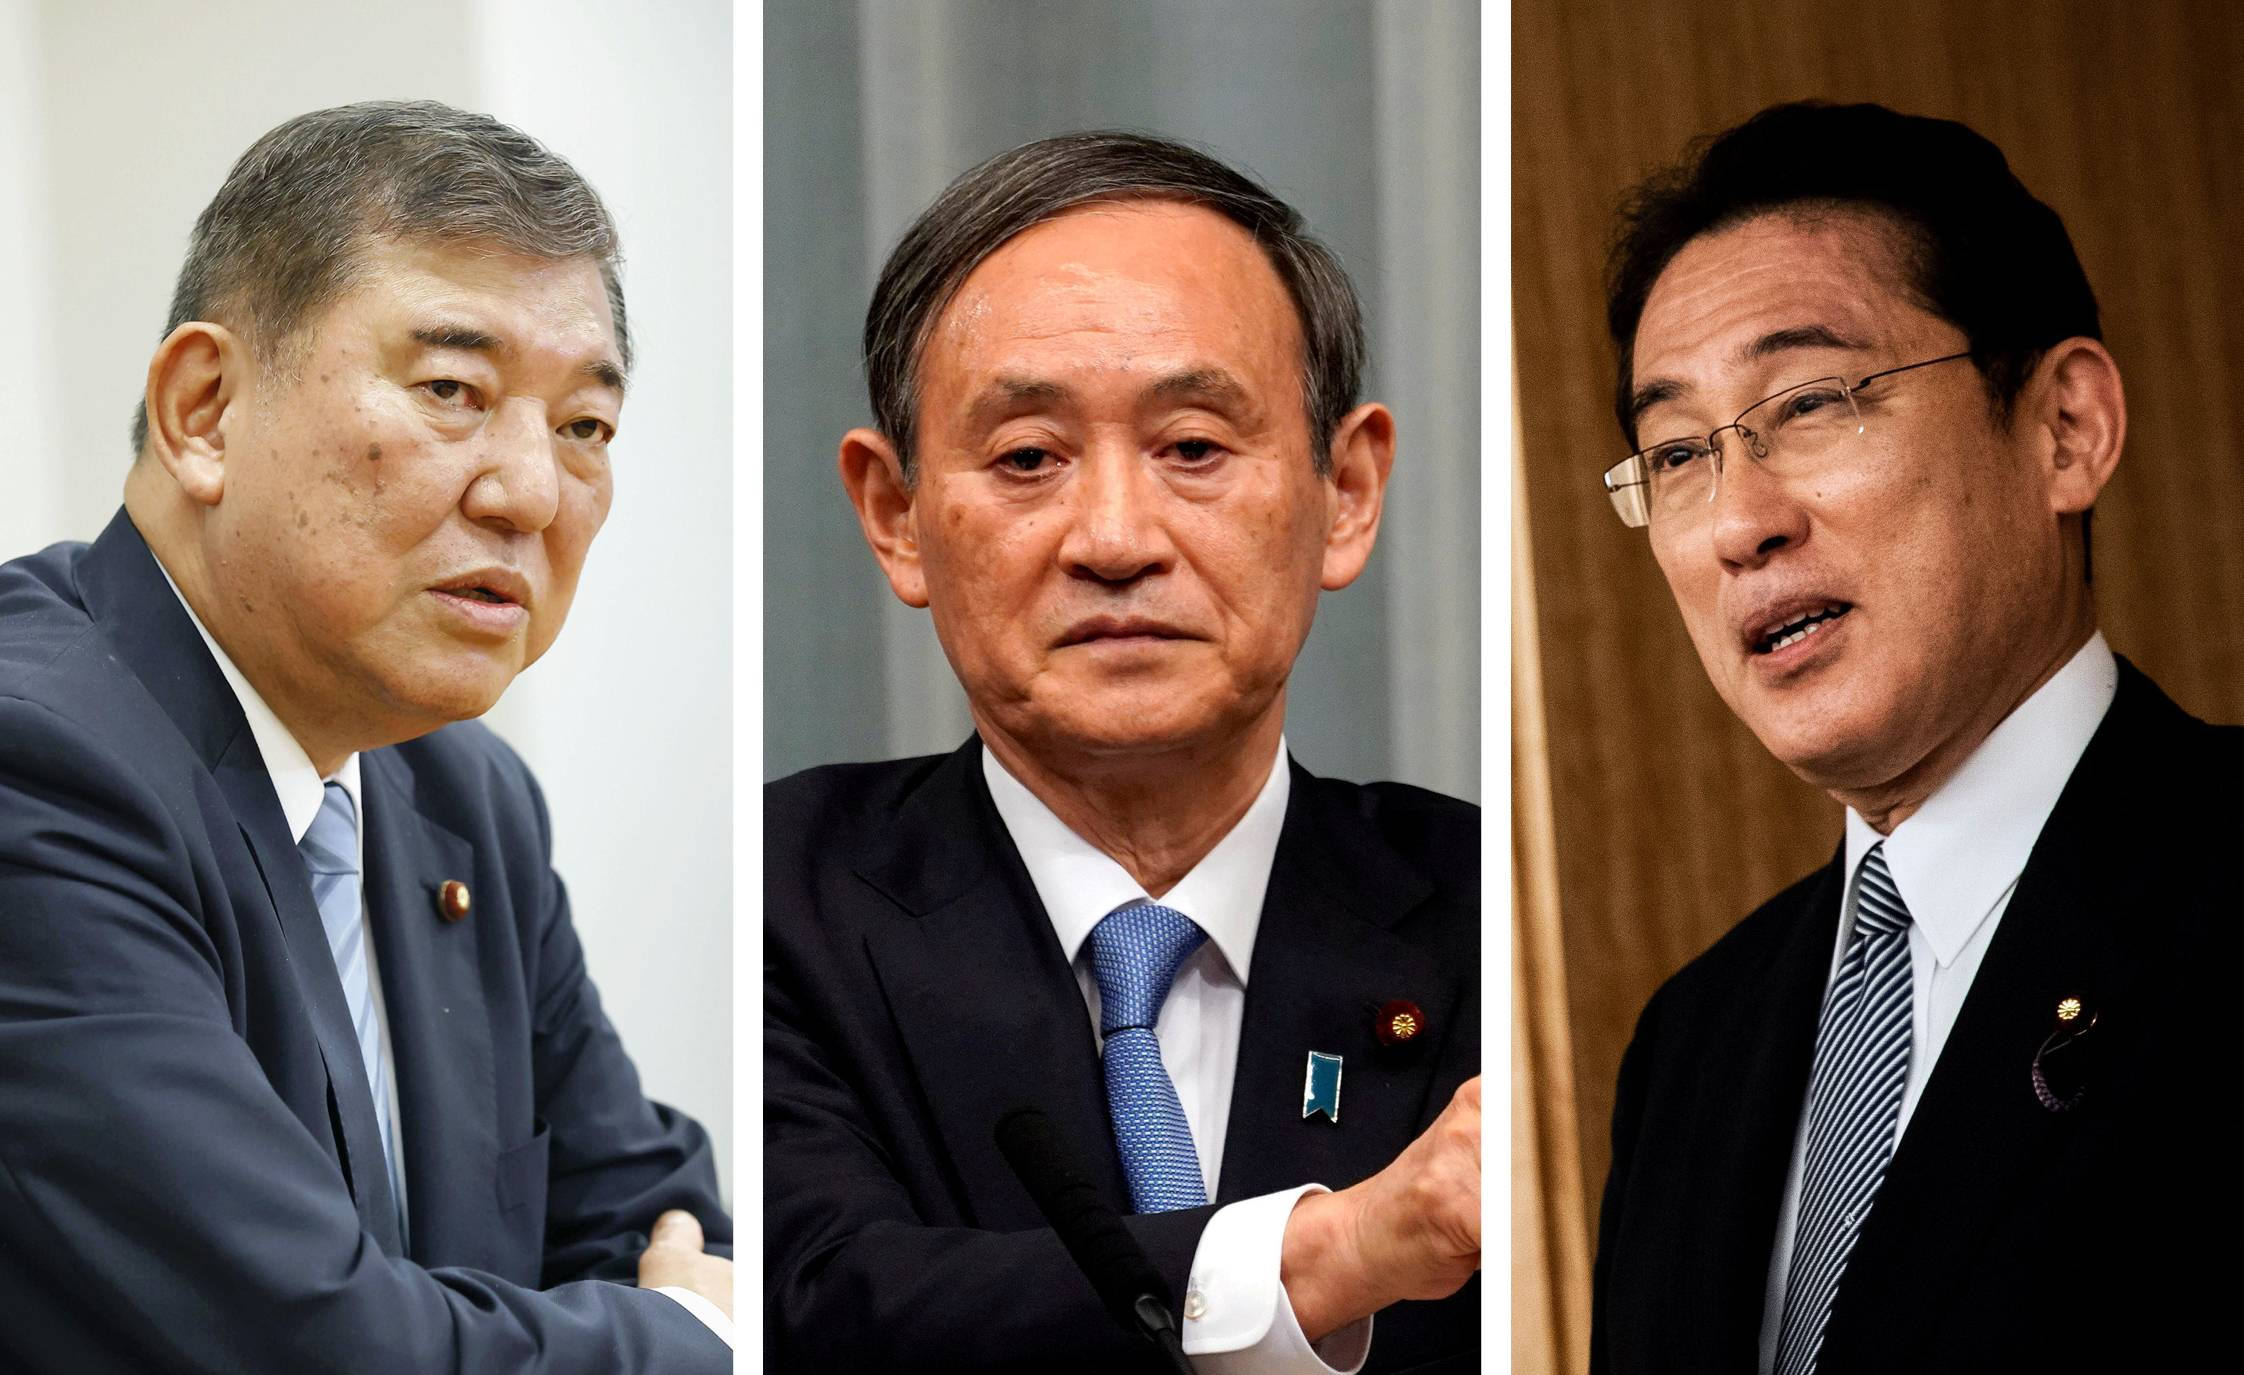 Chief Cabinet Secretary Yoshihide Suga (center) is widely predicted to be a shoo-in for the LDP presidential election, but party policy chief Fumio Kishida (right) and former defense minister Shigeru Ishiba (left) are also in the running. | KYODO, REUTERS, AFP-JIJI